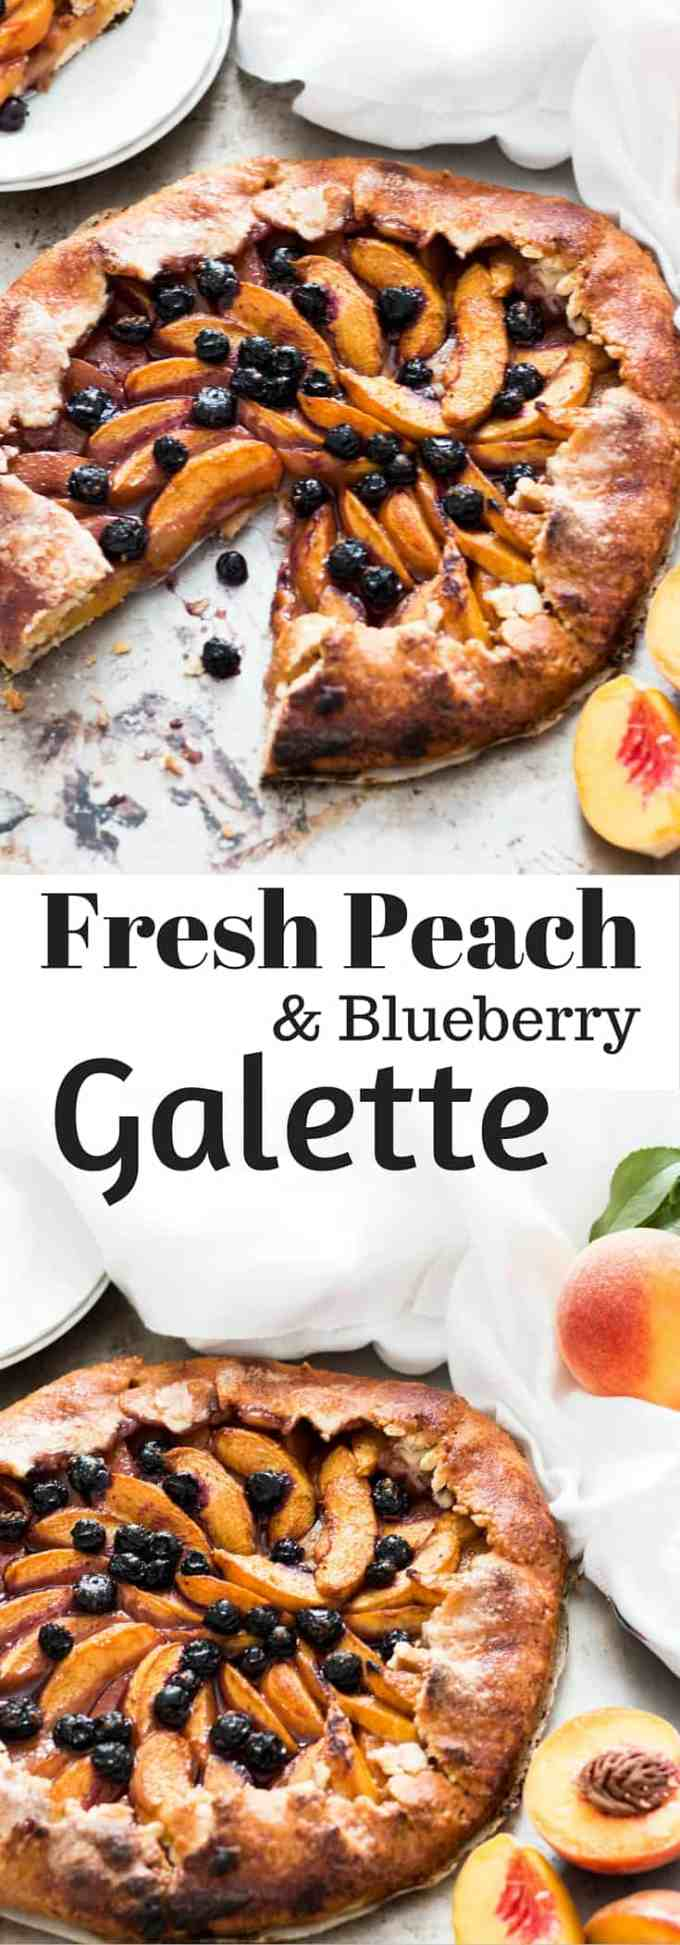 Rustic, simple and fuss-free Blueberry and Peach Galette Recipe is a real show stopper without any stress